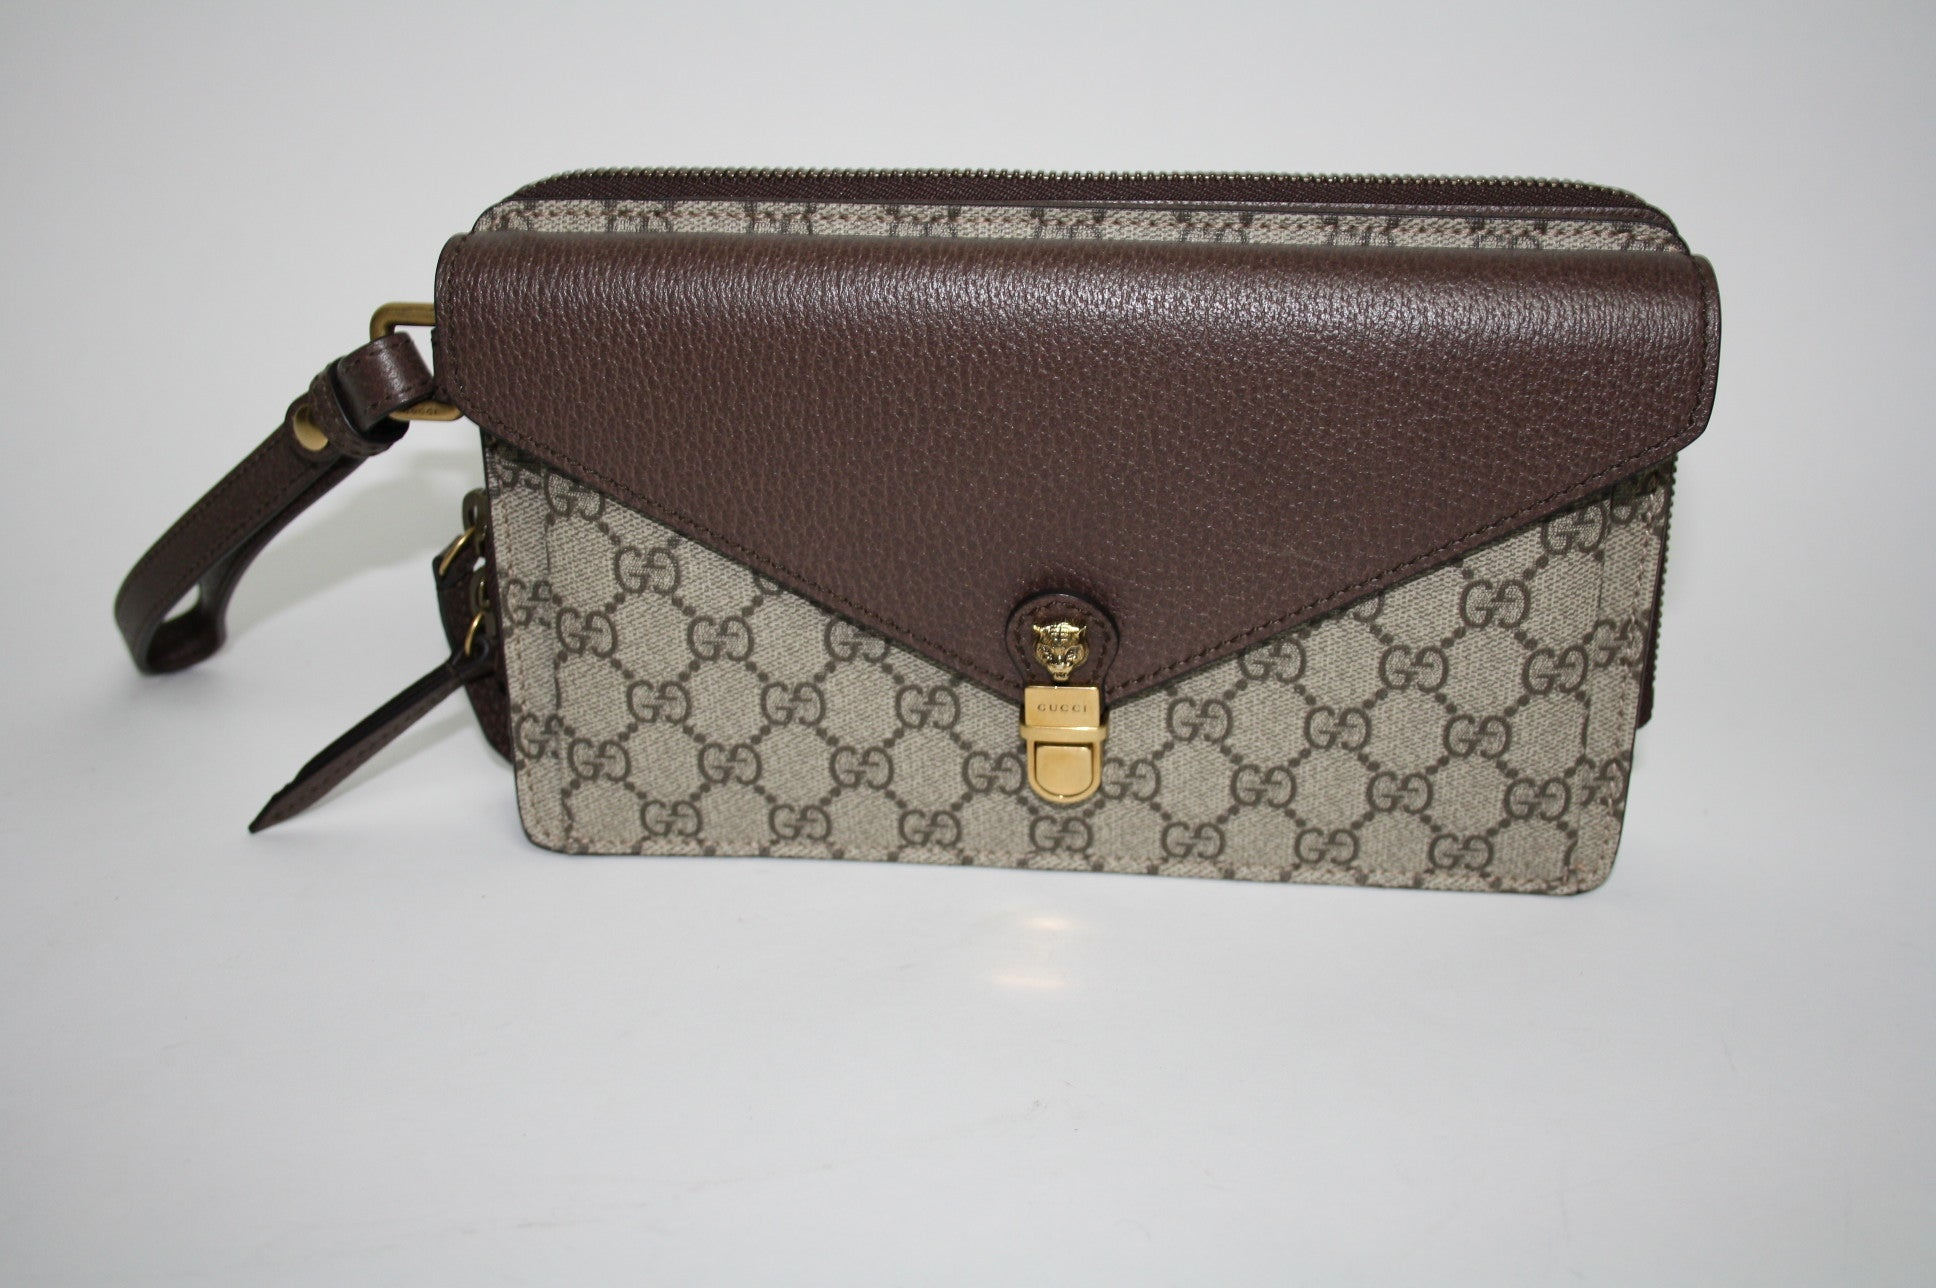 Gucci zip clutch bag - Iconics Preloved Luxury